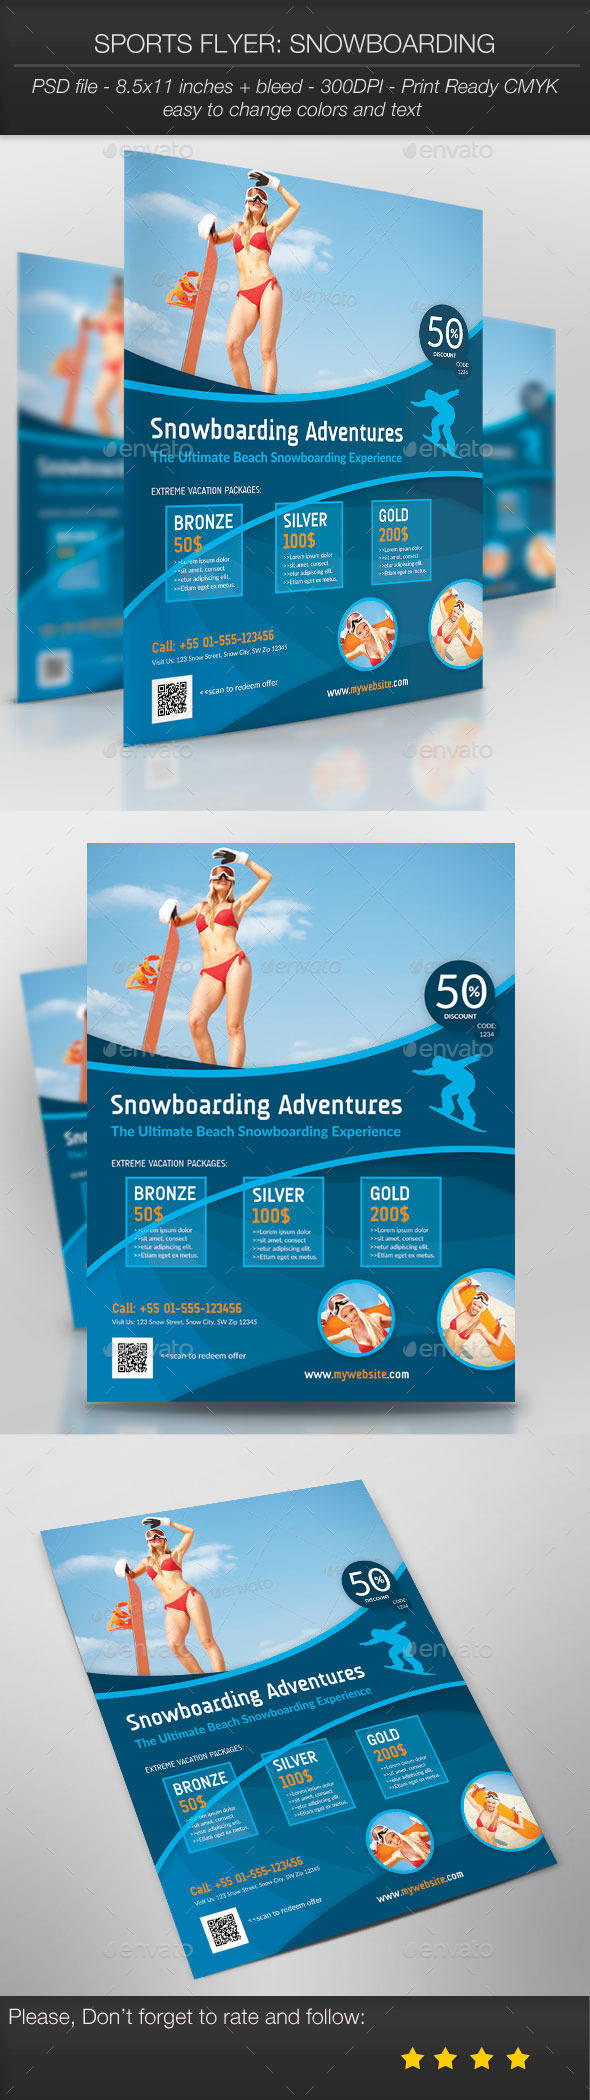 GraphicRiver Sports Flyer Snowboarding 10023690